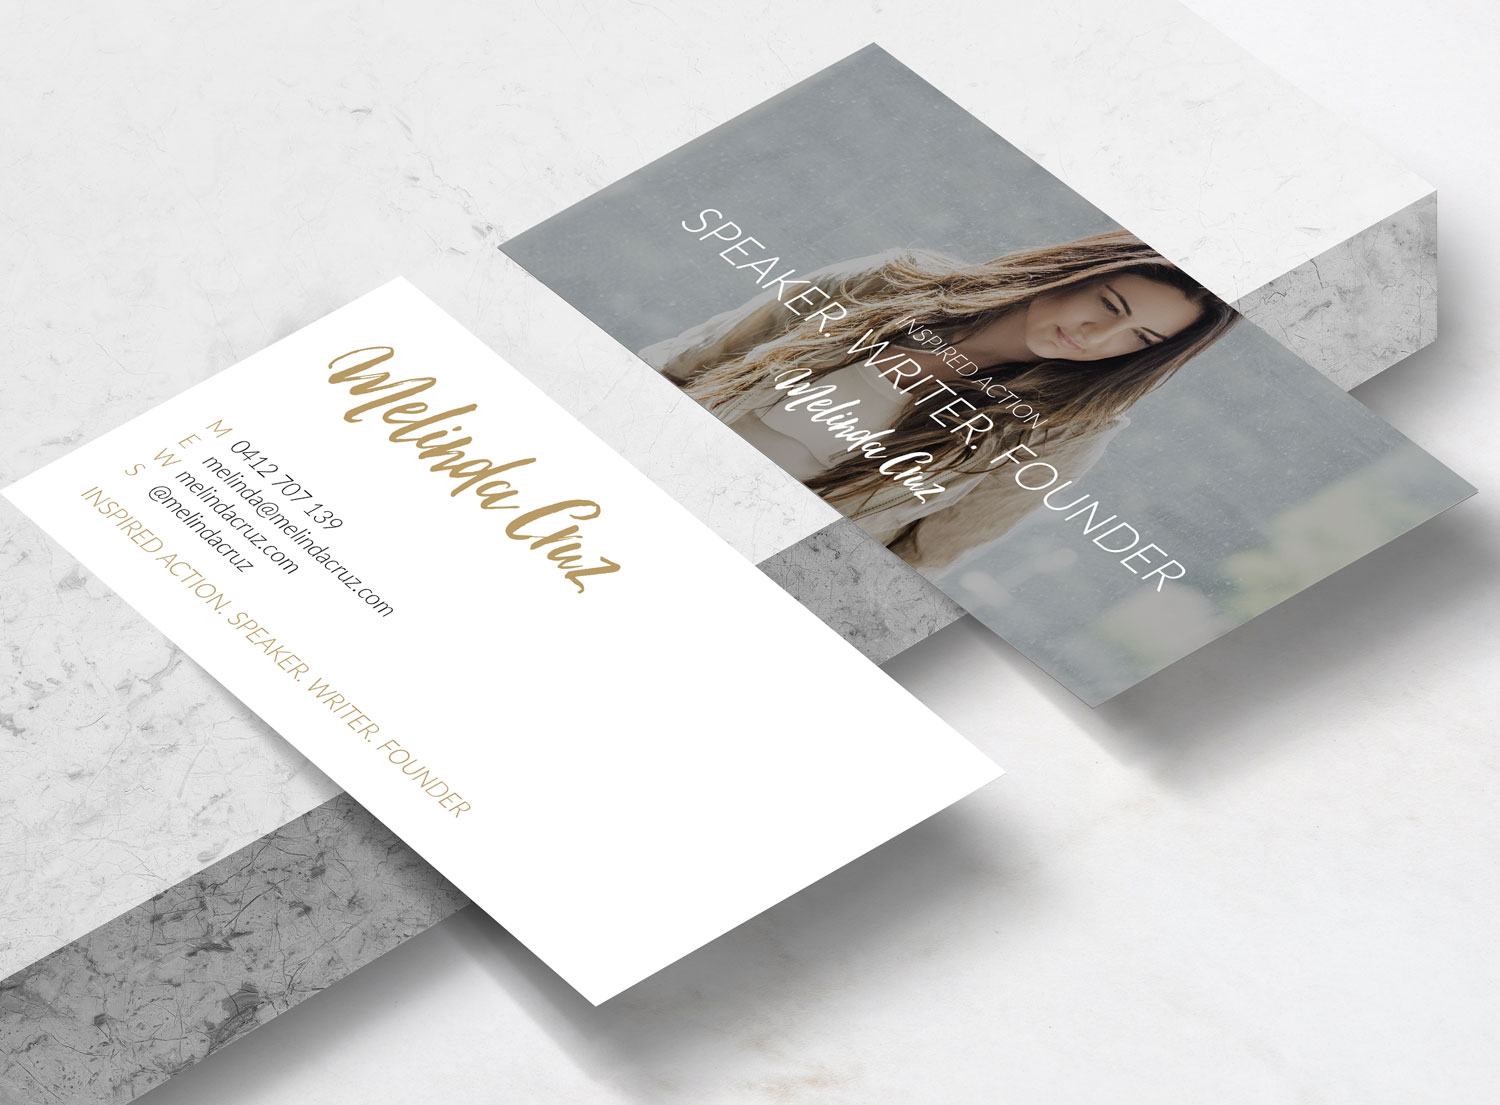 Melinda-Cruz-Personal-Brand-Business-Cards-Belle-Creative.jpg